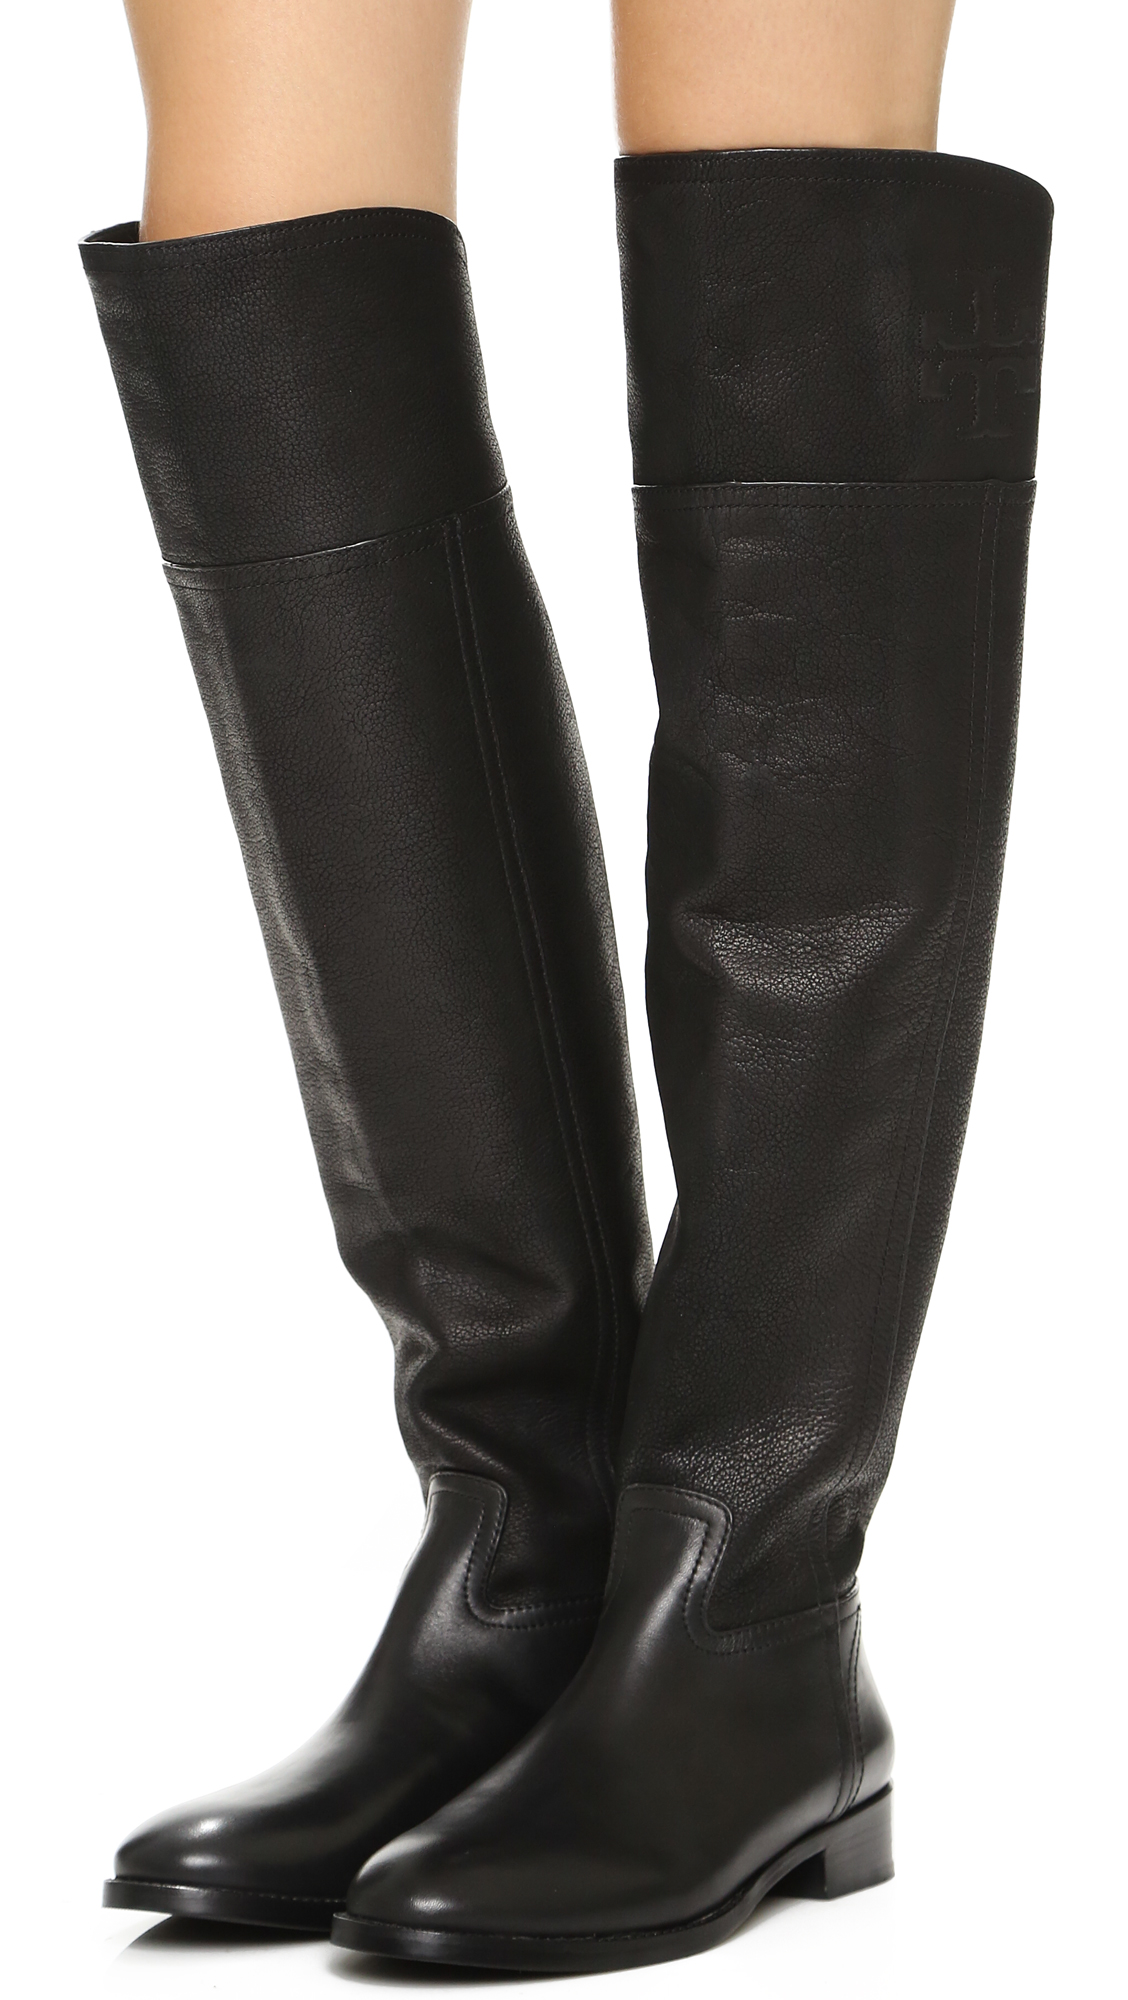 98deb245222 Tory Burch Simone Over the Knee Boots